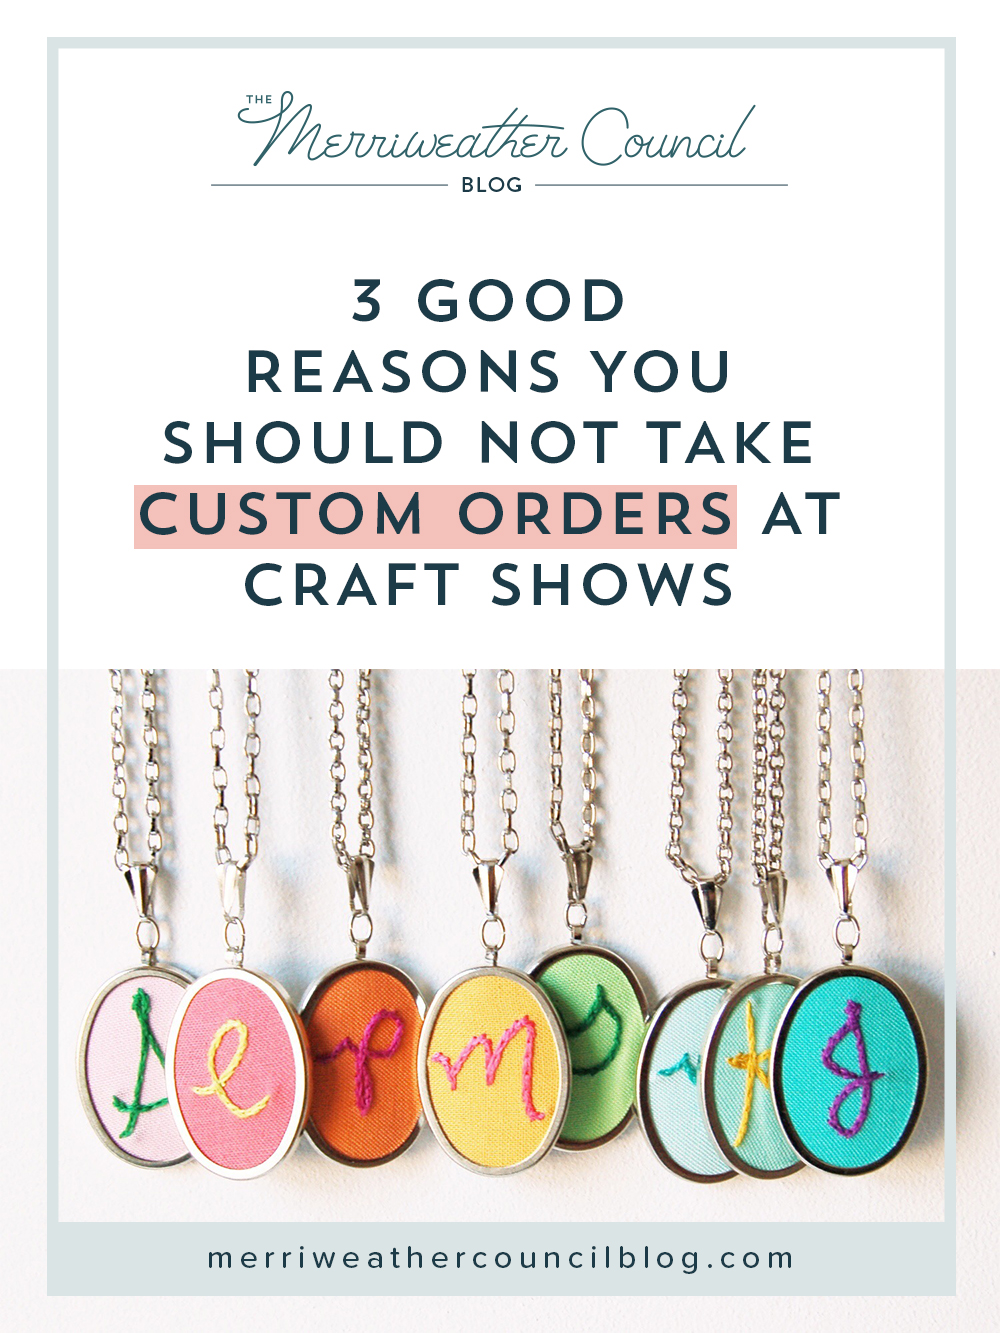 3 reasons you should not take custom orders at craft shows | the merriweather council blog